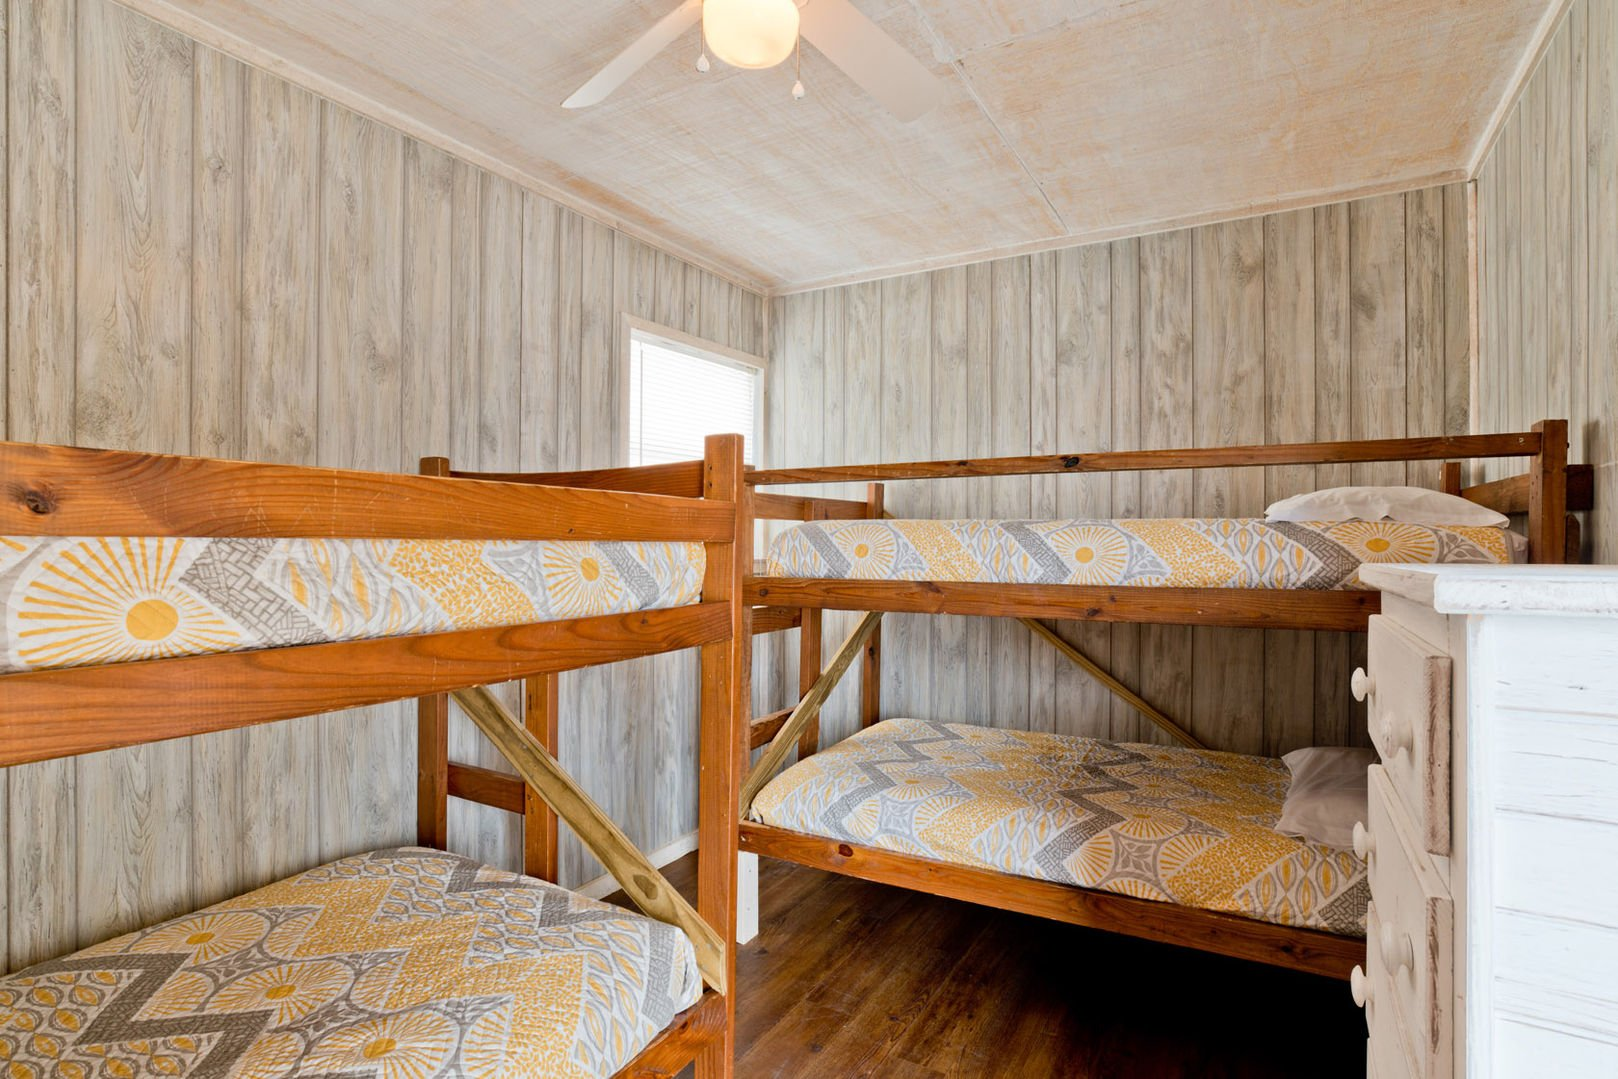 Bunk Room is a Great Room for Kids